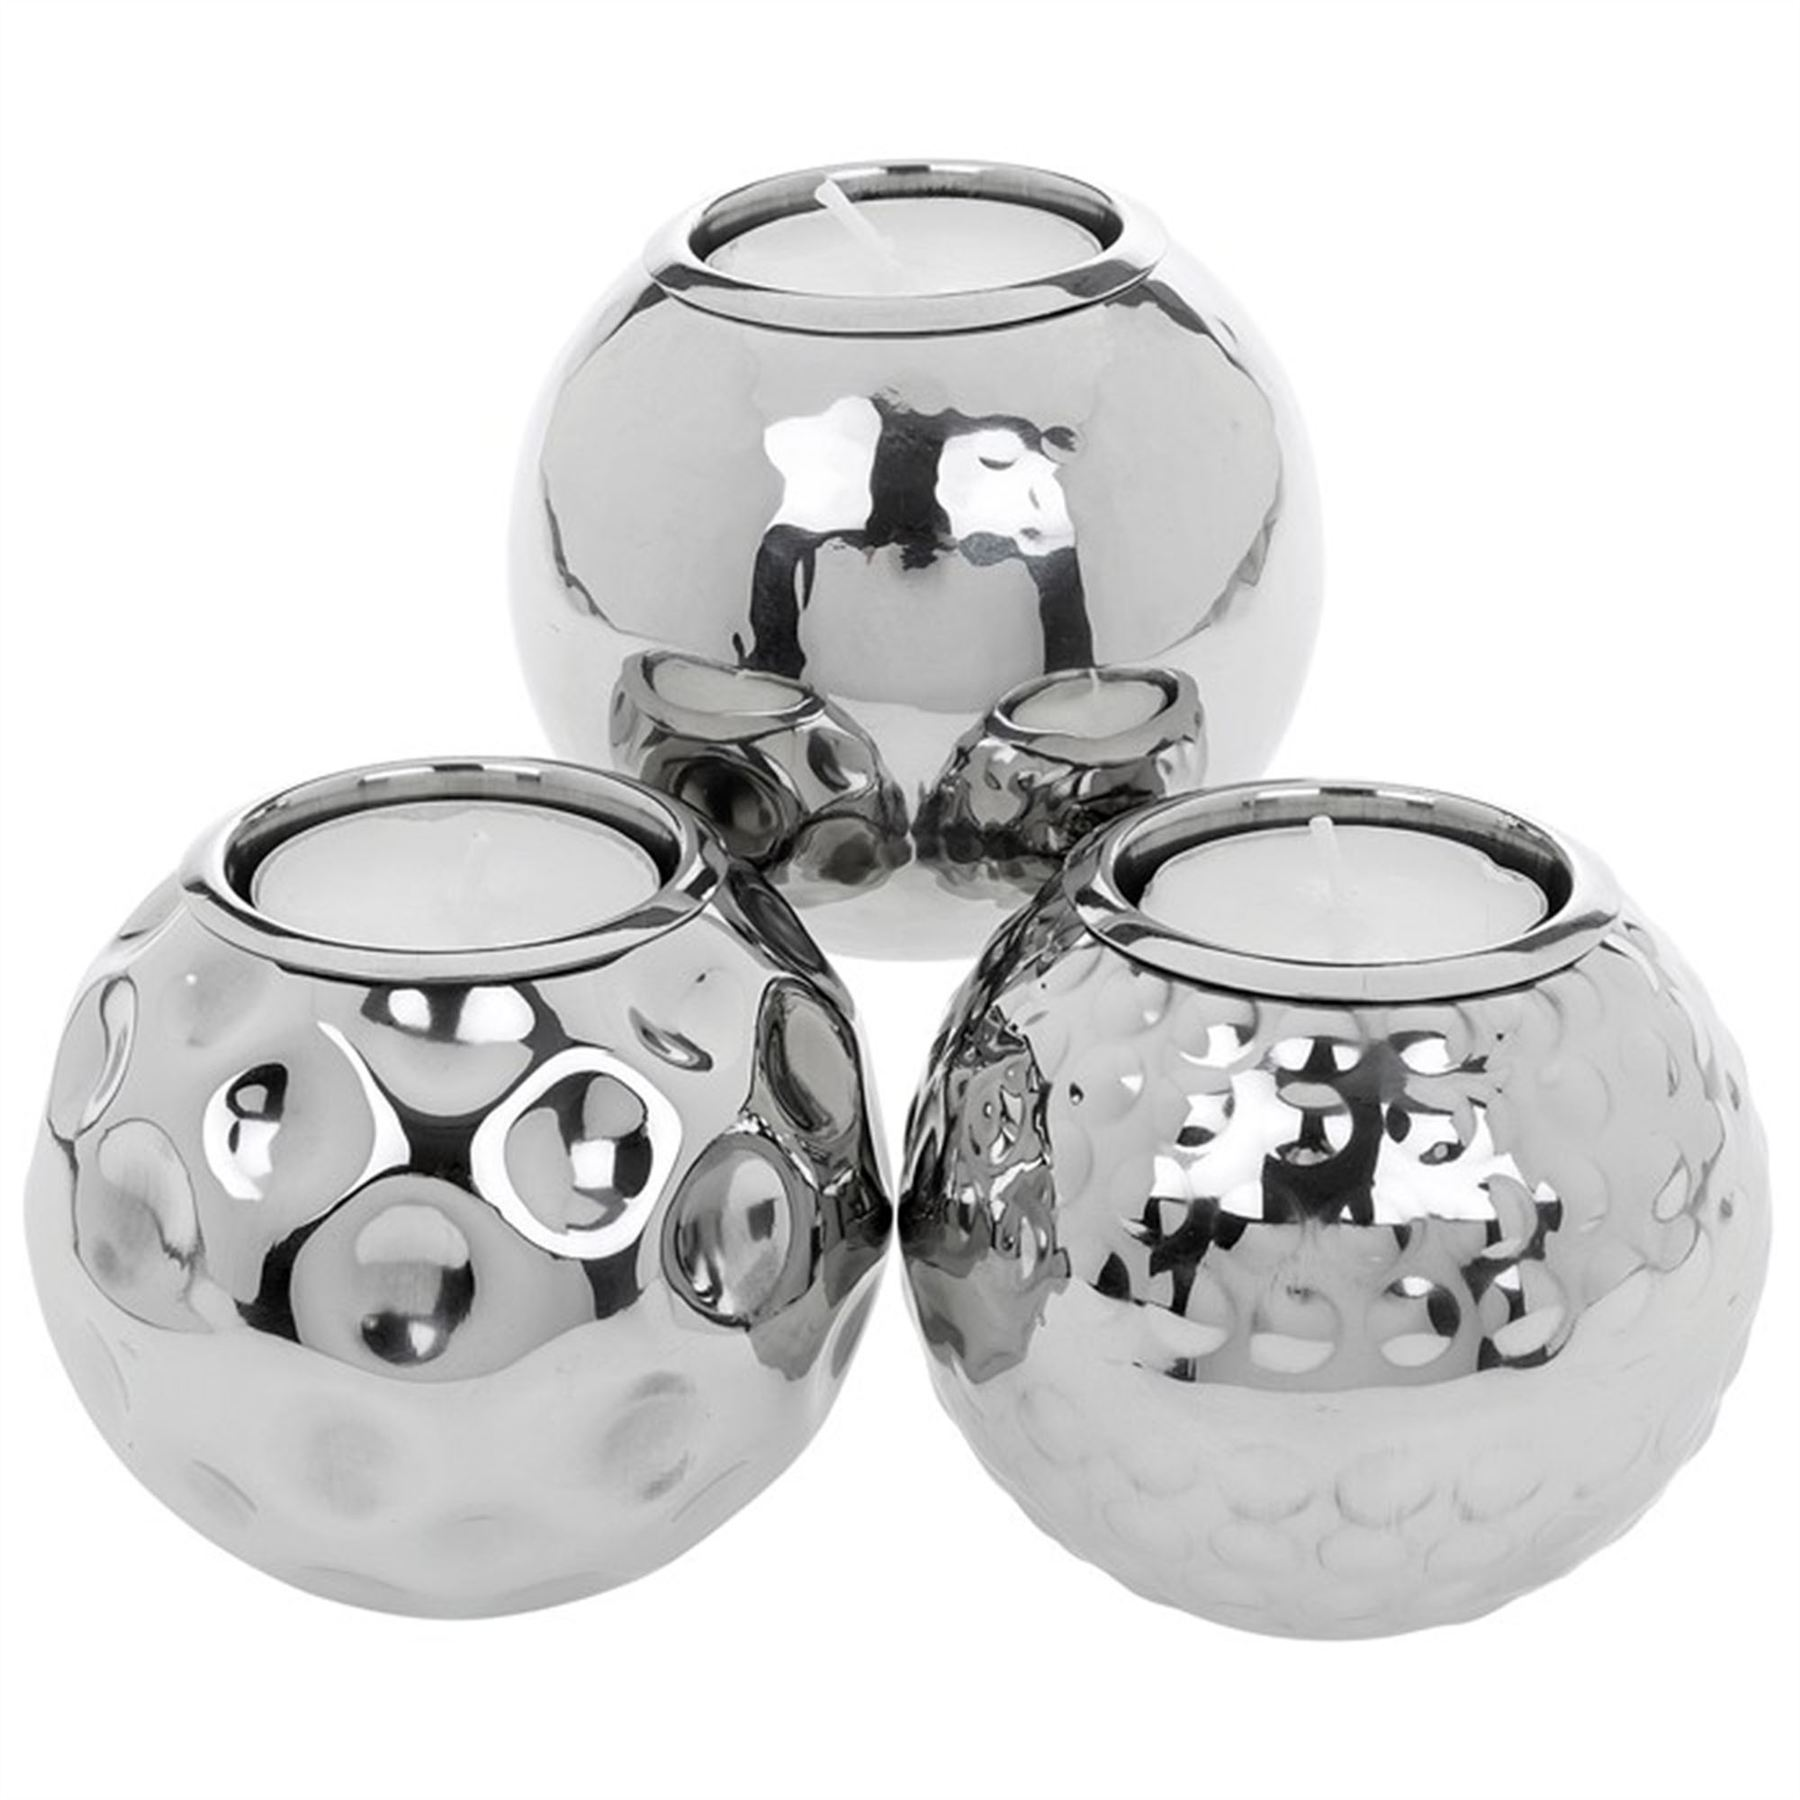 We have a beautiful variety of tea light holders. Our tea light candle holders allow the tea light to create a soft, warm, ambiance. We have tea light holders that are elegantly designed from ceramic and will accent your candles nicely as you display them in your home.